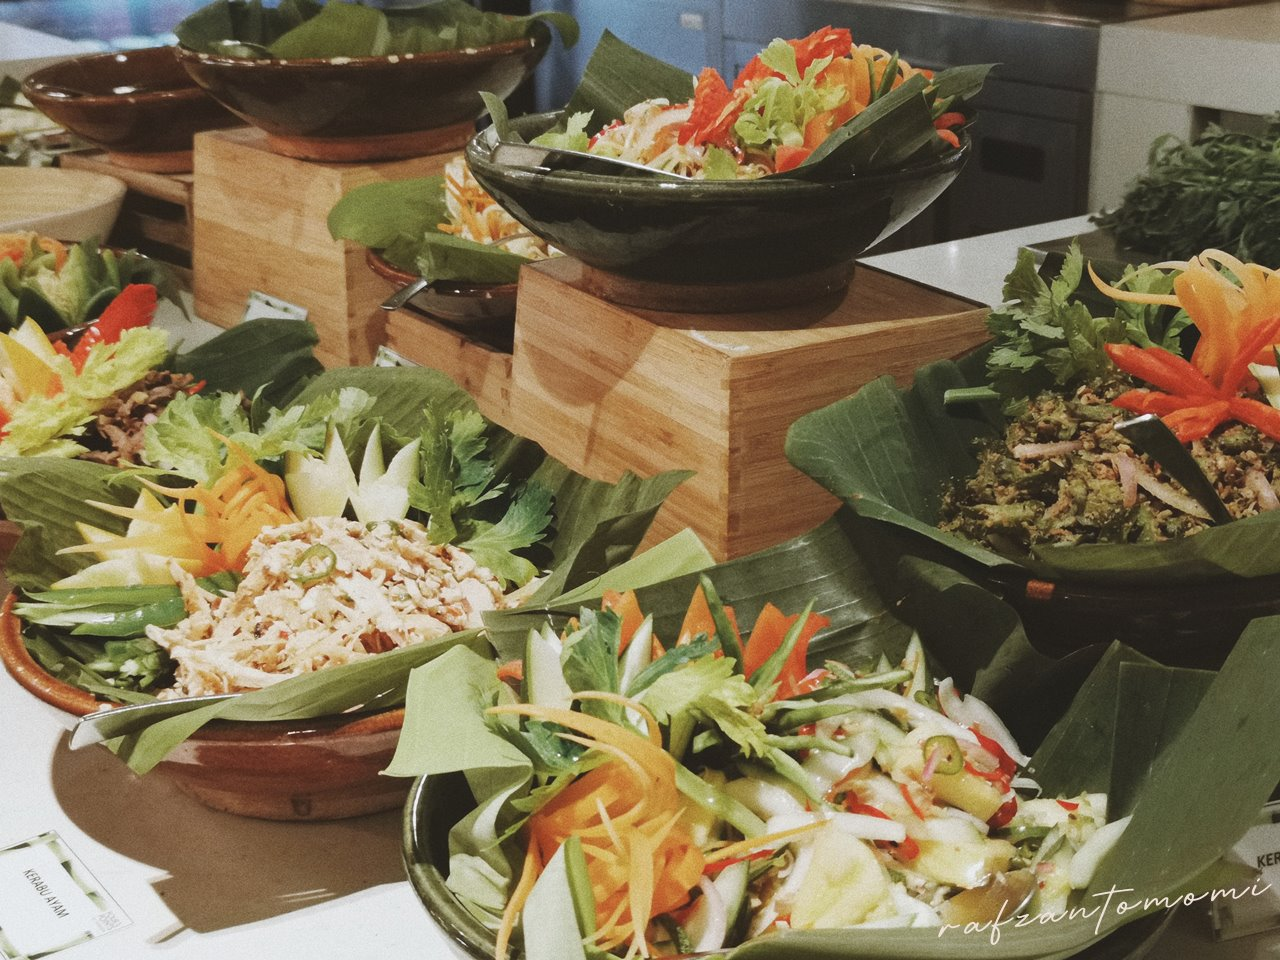 Bufet Ramadan 2021 - The Eatery Restaurant, Four Points by Sheraton Puchong